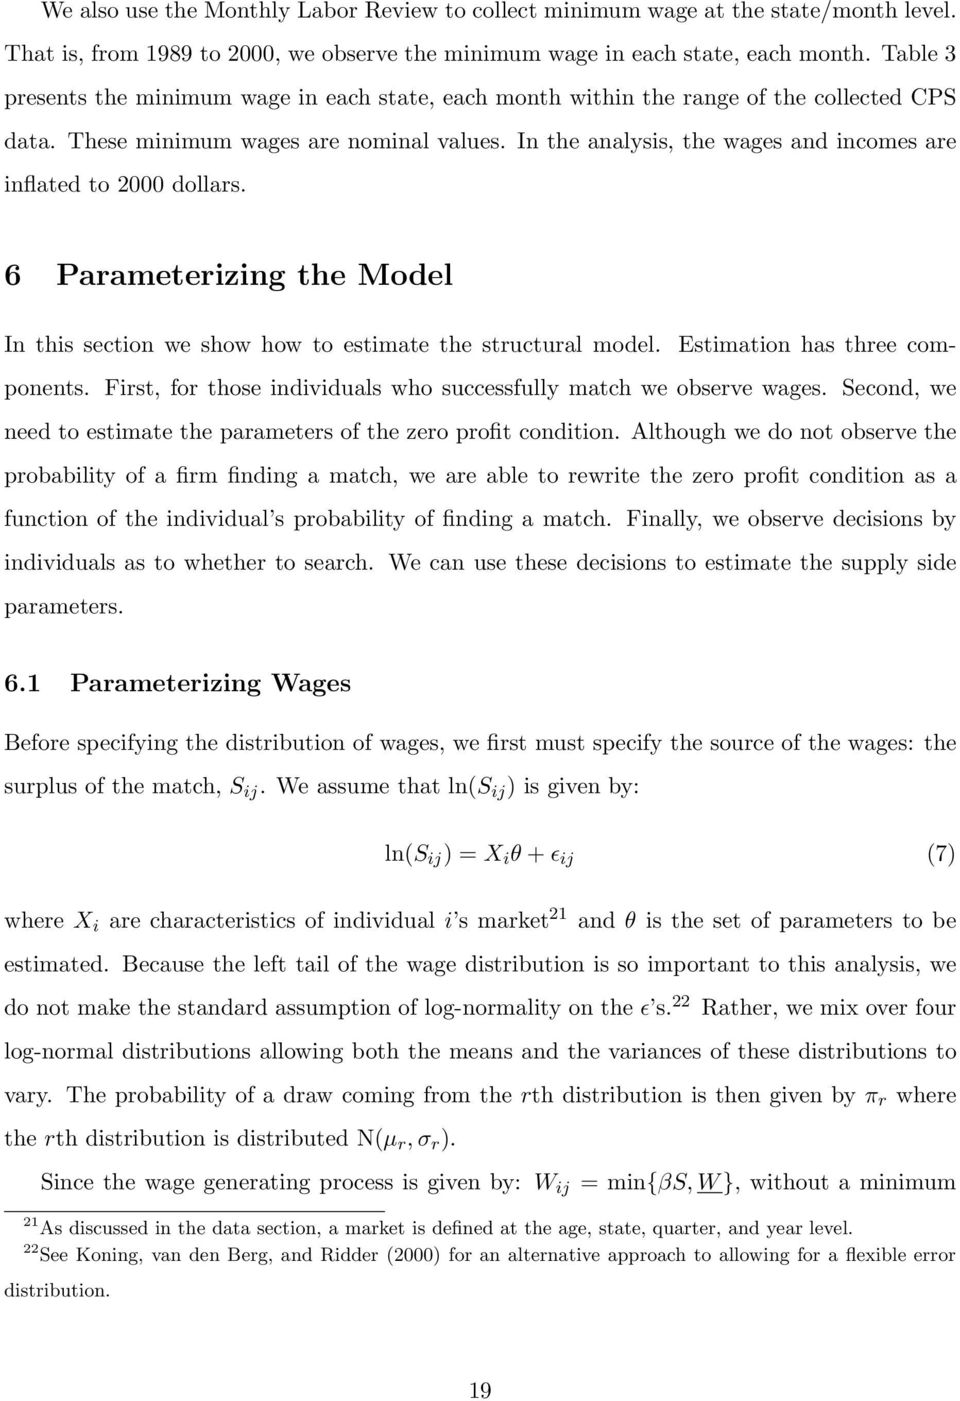 In the analysis, the wages and incomes are inflated to 2000 dollars. 6 Parameterizing the Model In this section we show how to estimate the structural model. Estimation has three components.